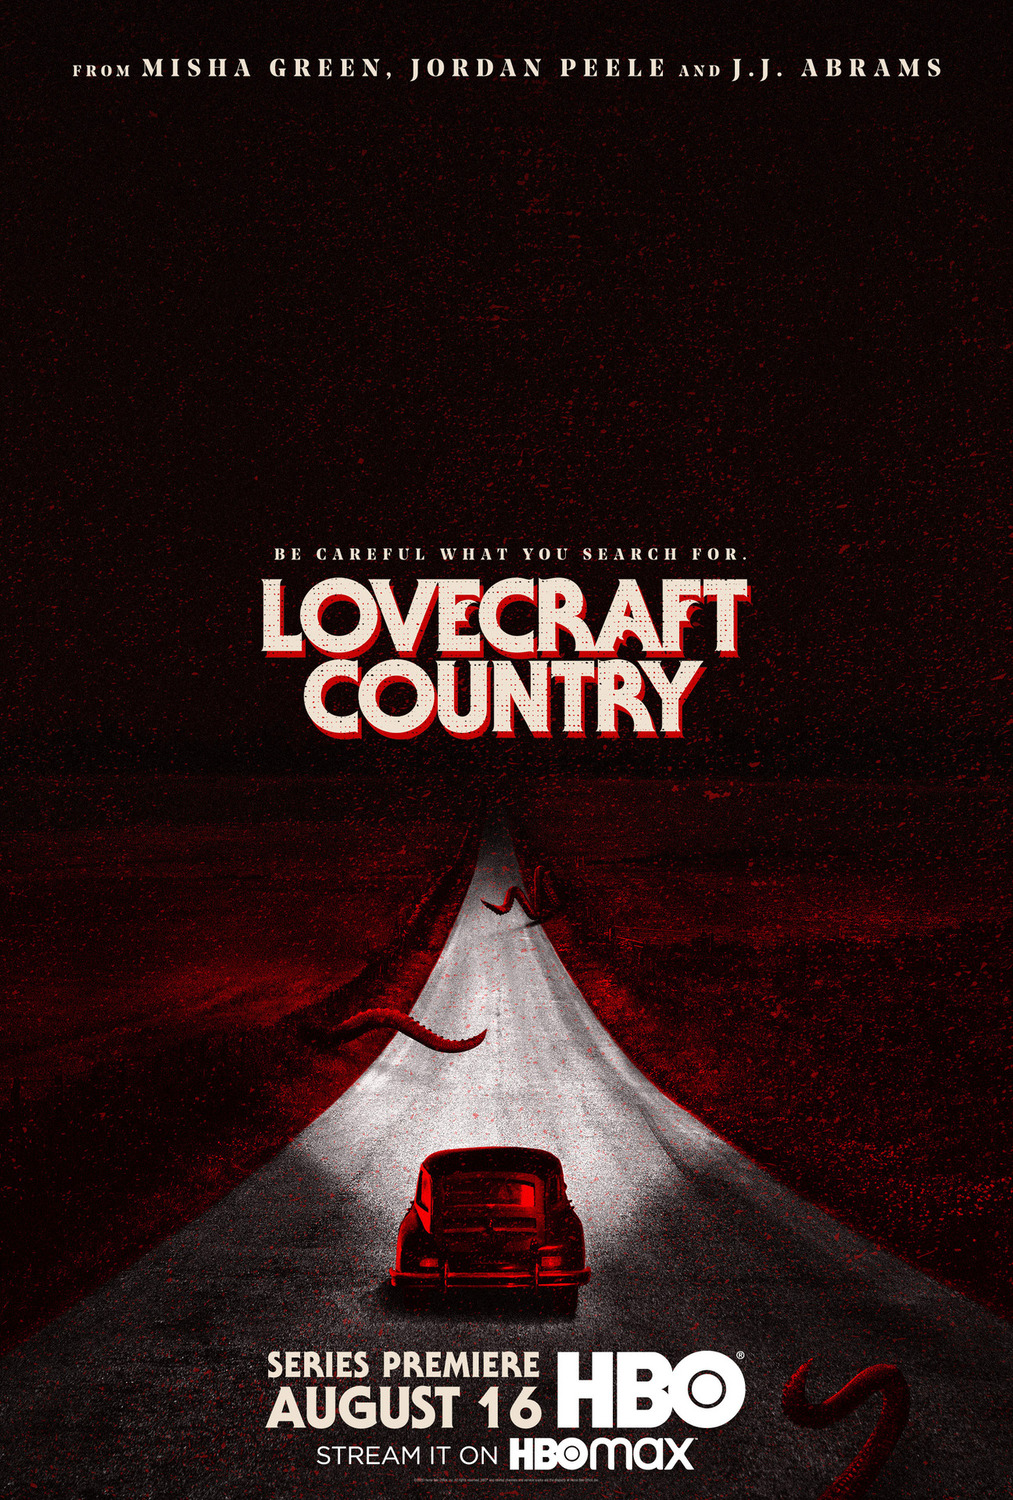 43 - Lovecraft Country